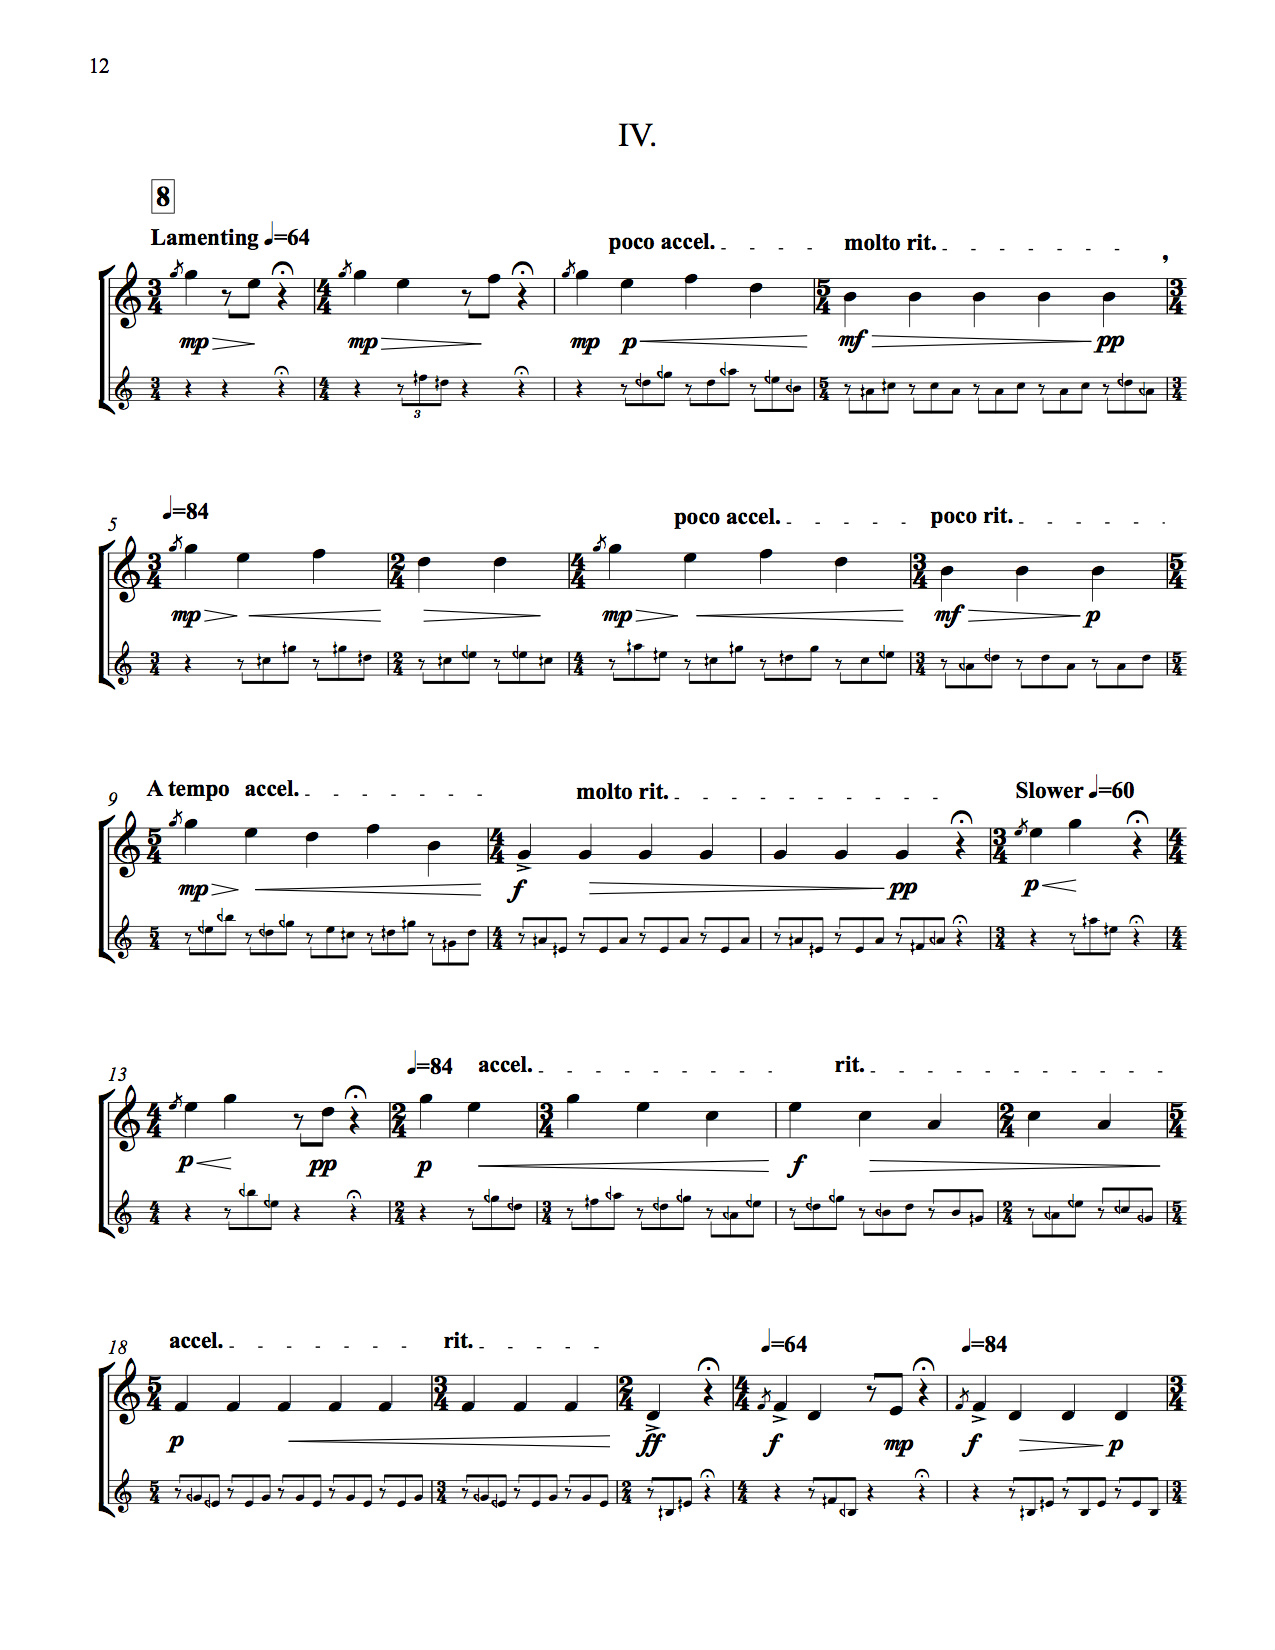 Quarter Tone Etudes for Orff Xylophone (dragged) 6.jpg